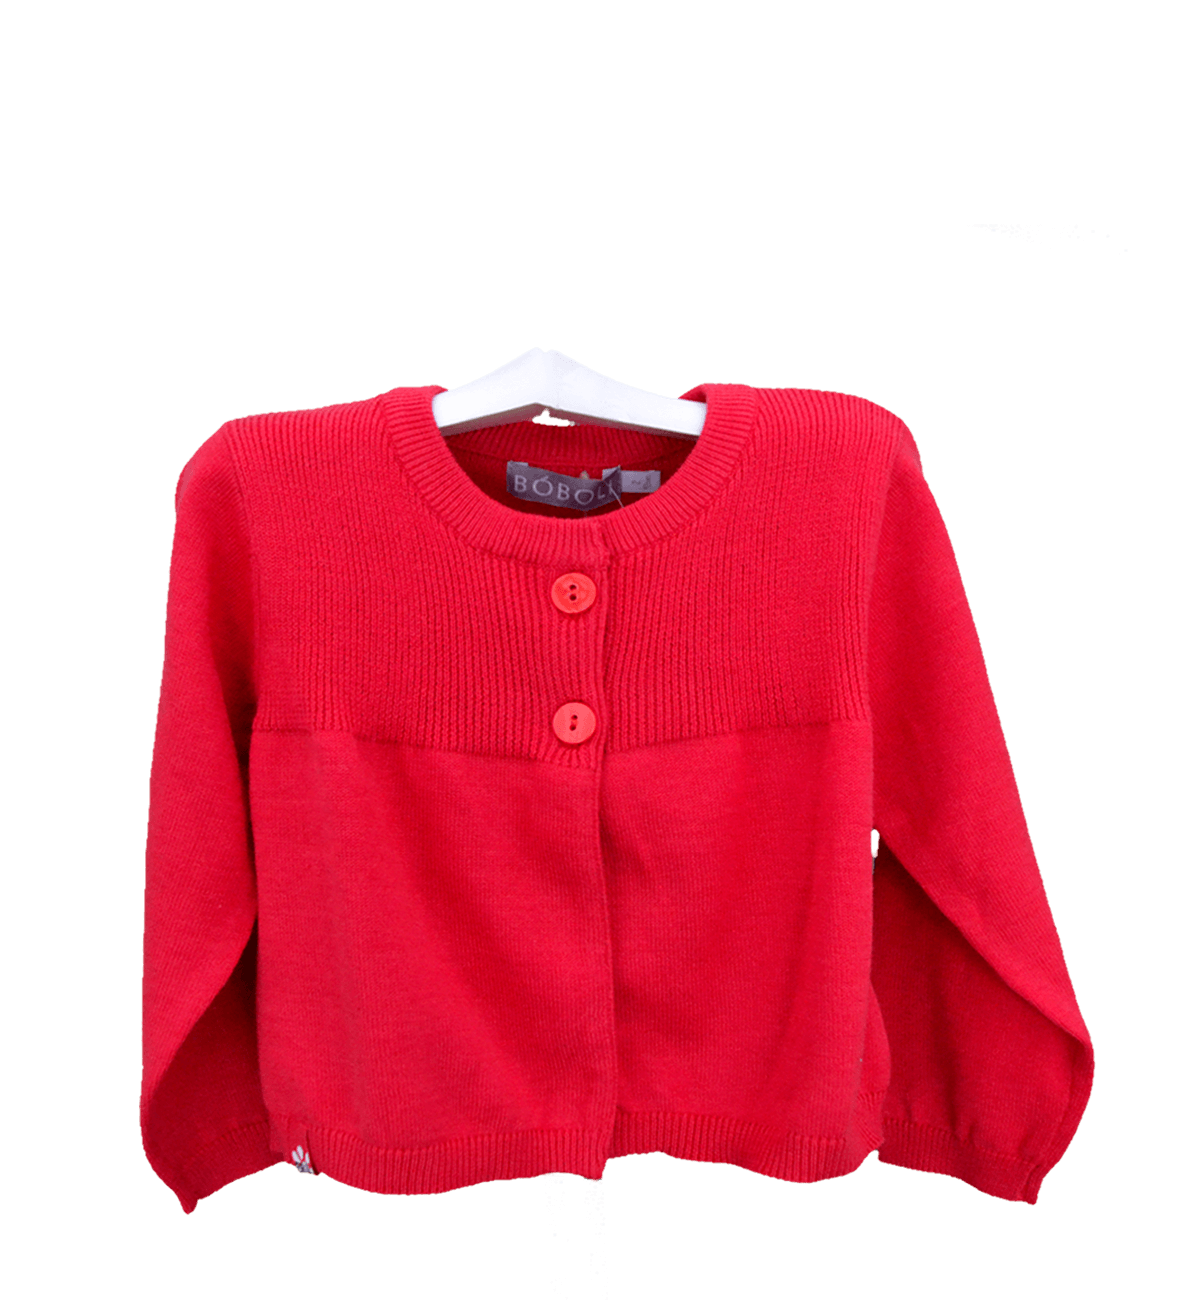 Spanish baby clothes | baby Cardigan & Coat | Red cardigan |babymaC